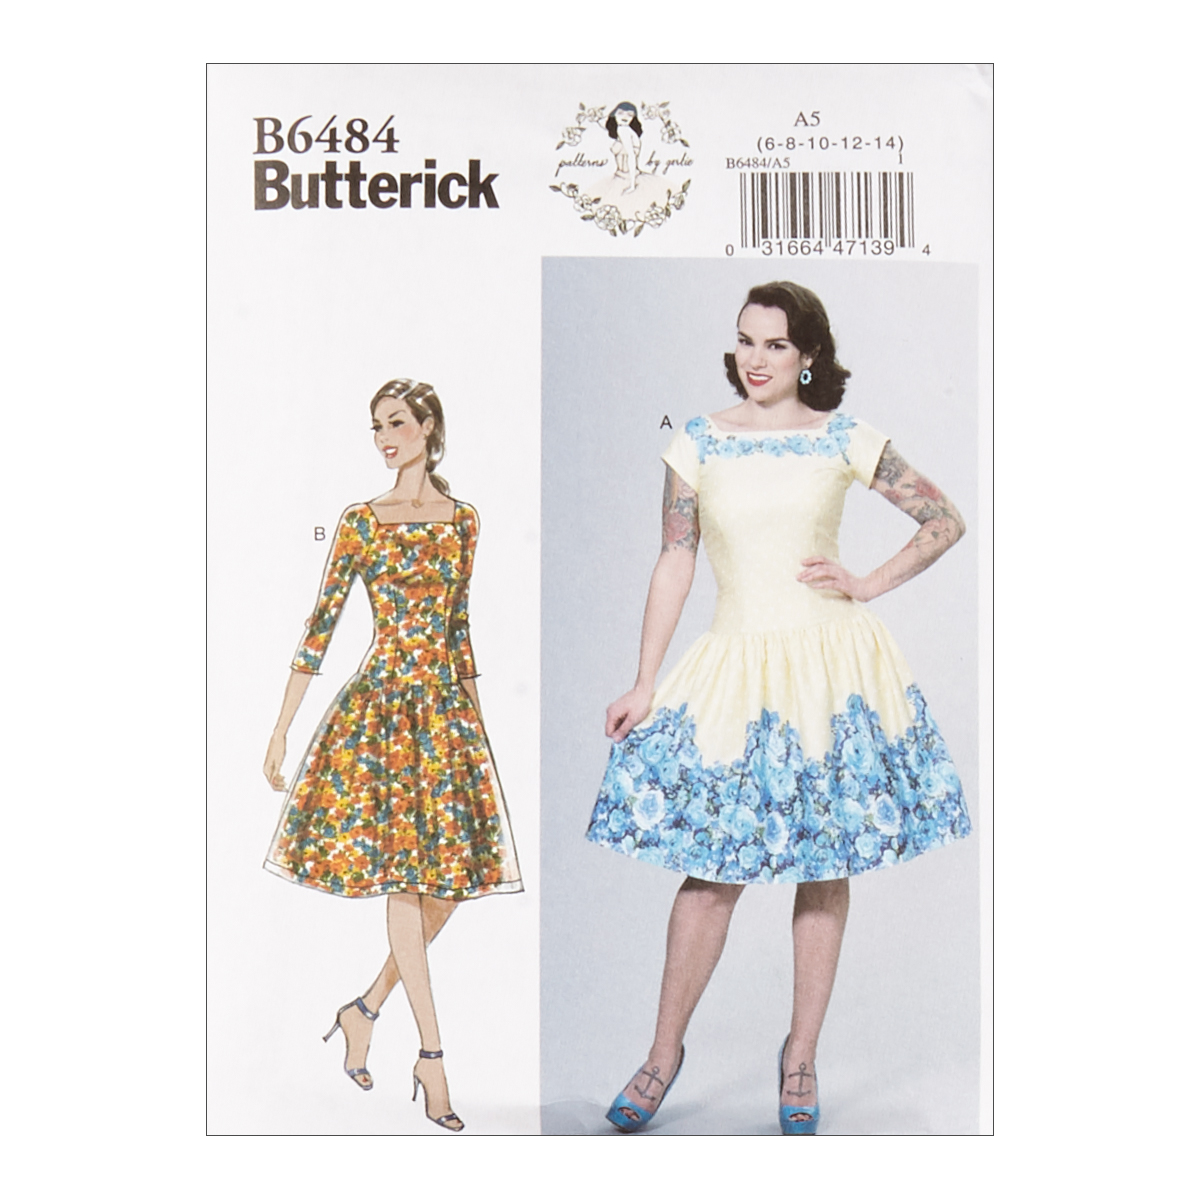 1950s Fabrics & Colors in Fashion Butterick B6484 Patterns by Gertie Square-Neck Dropped-Waist Dresses A5 SZ 6-14 $11.97 AT vintagedancer.com